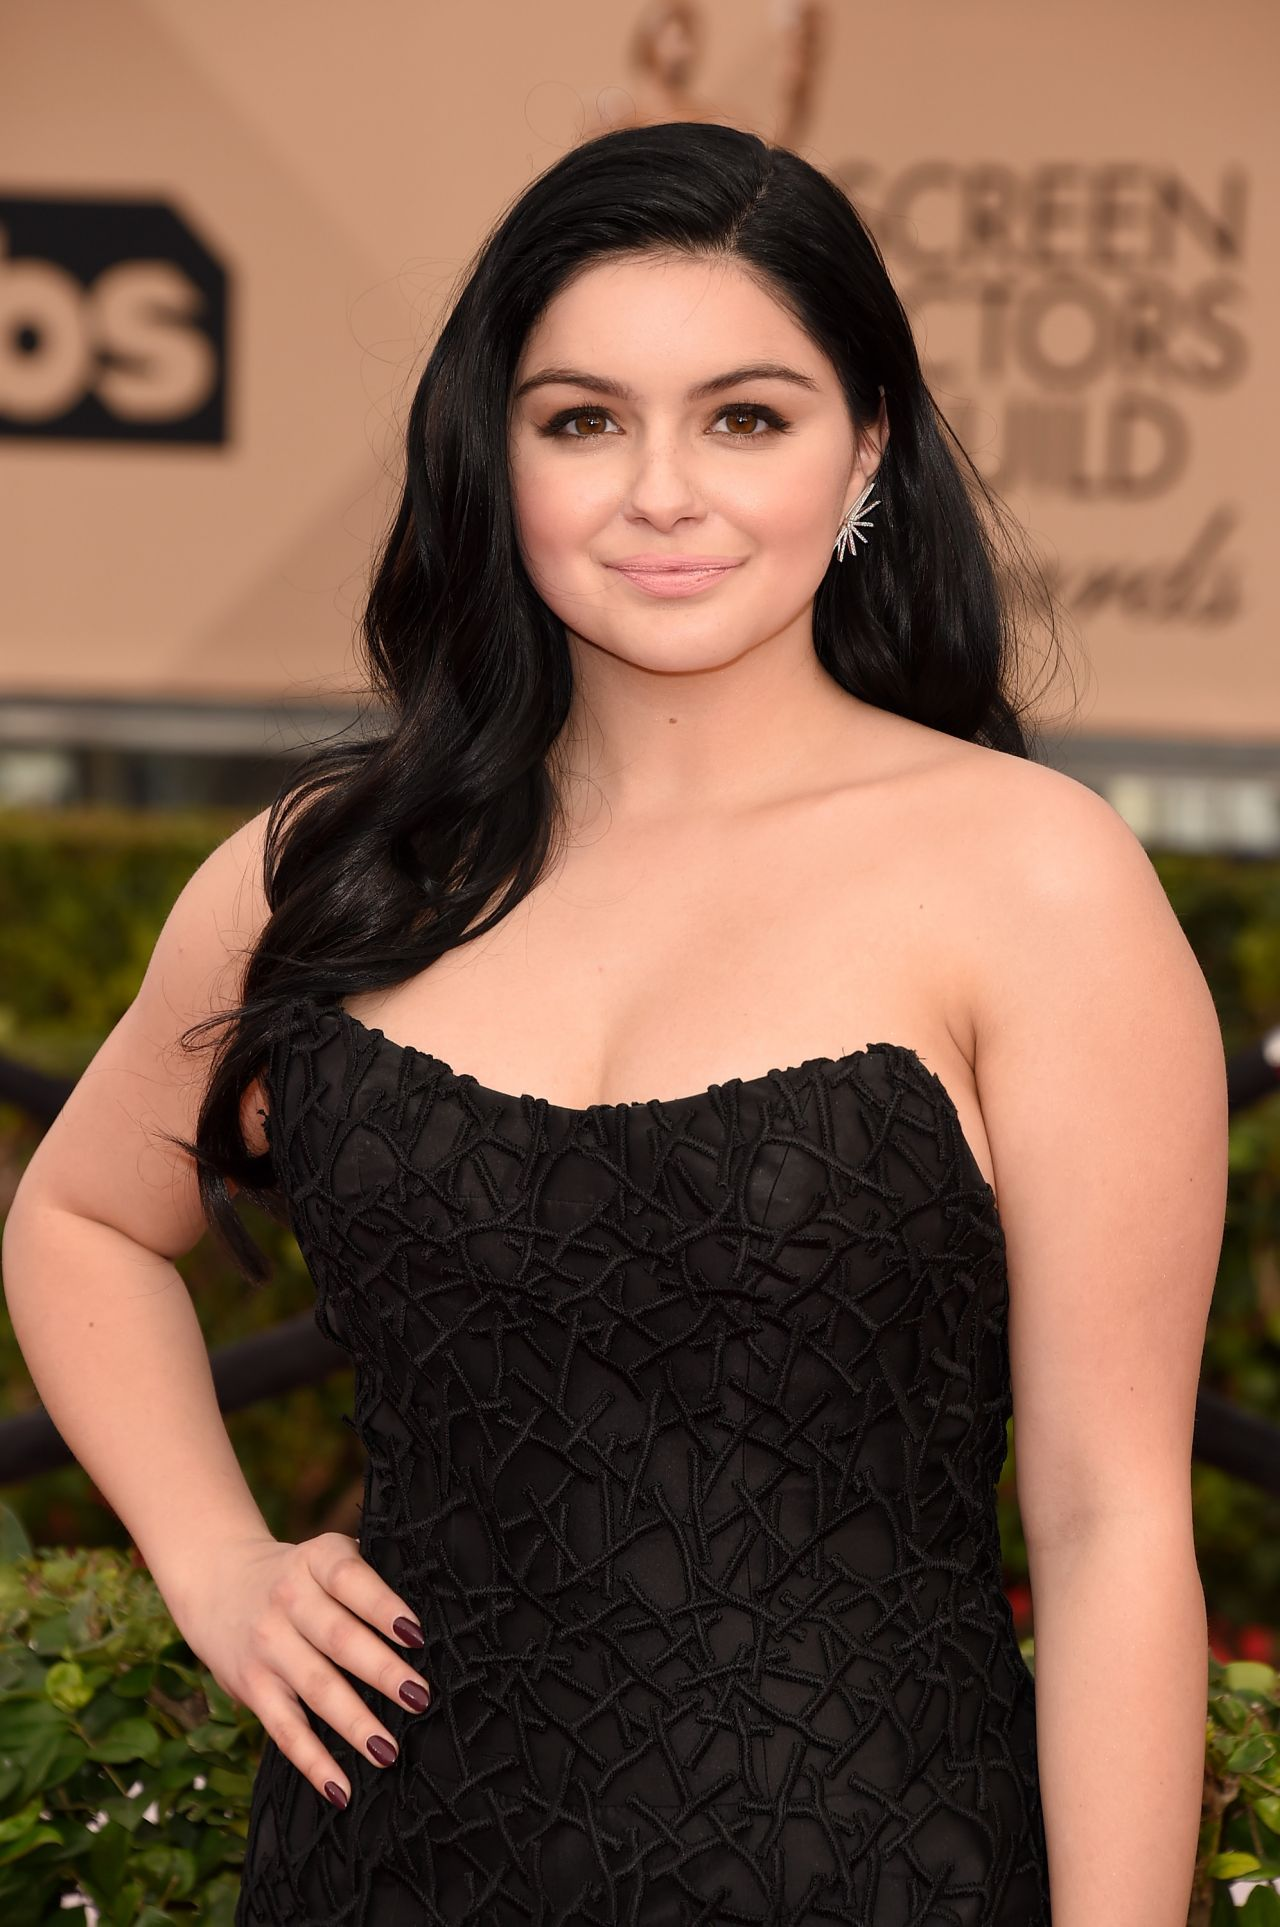 Ariel Winter nude (39 images) Pussy, Twitter, cleavage